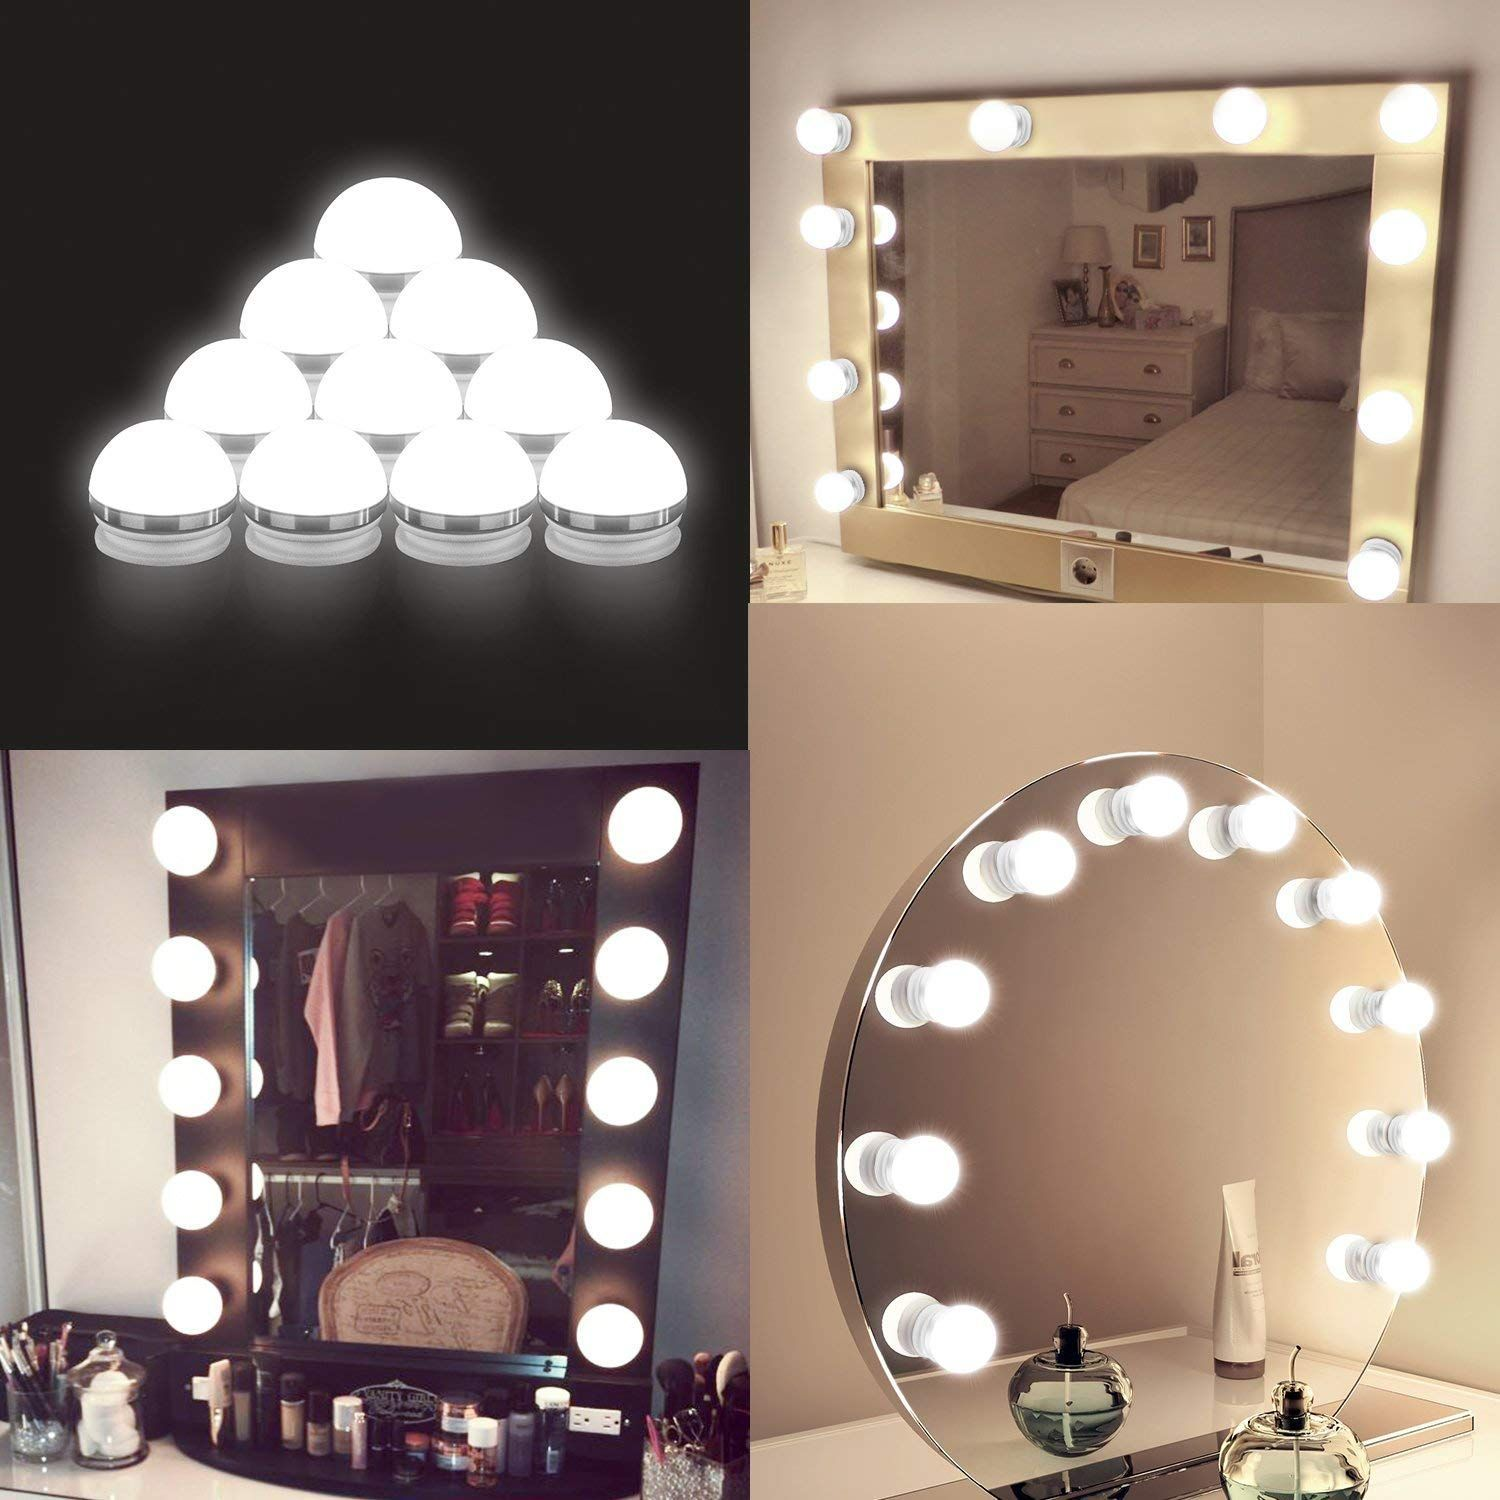 Beauty In 2020 Dressing Room Mirror Diy Vanity Mirror Diy Vanity Mirror With Lights